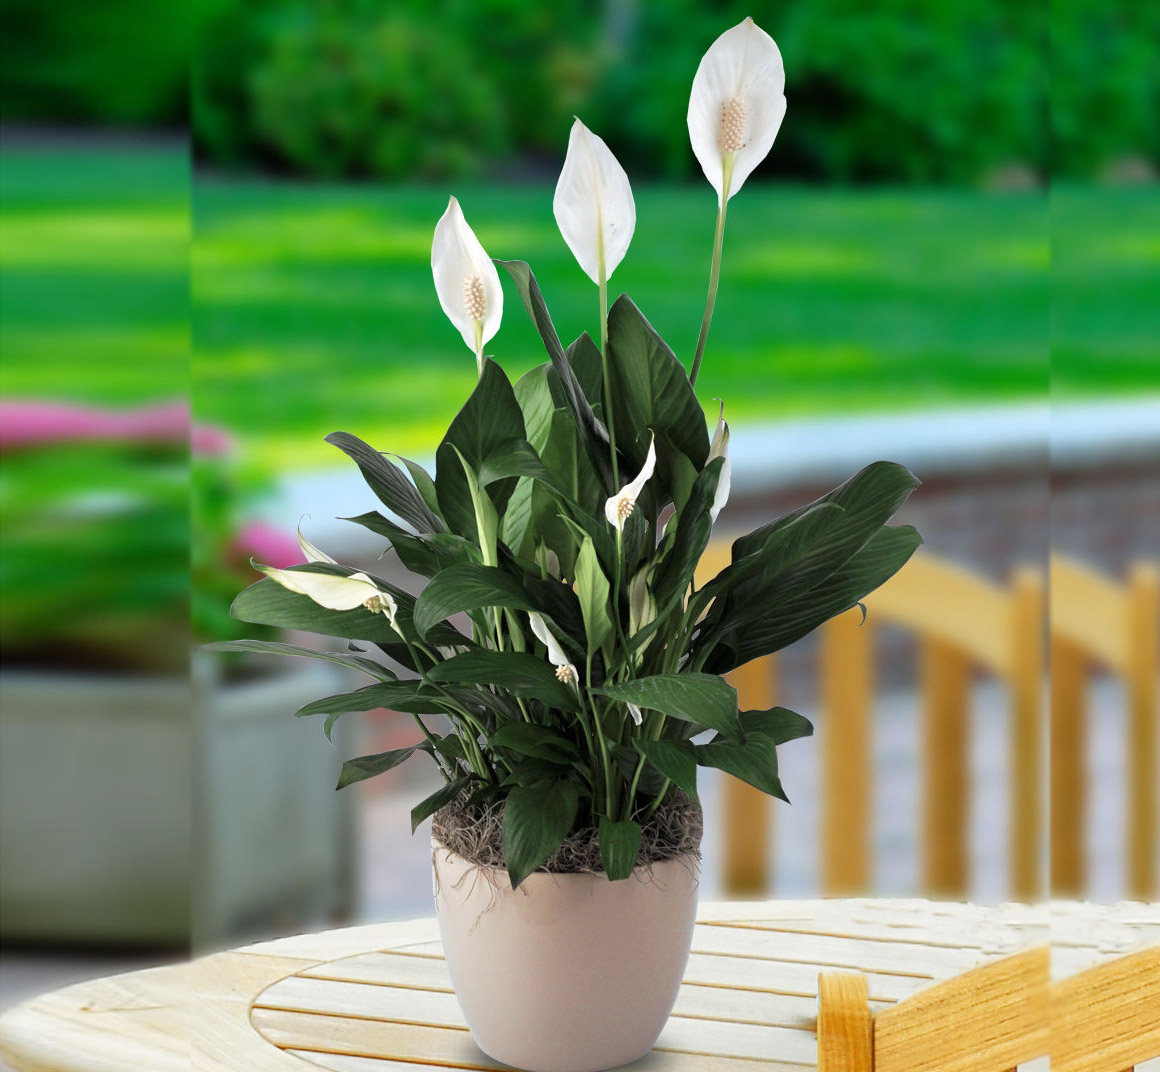 Spathiphyllum or Peace Lily